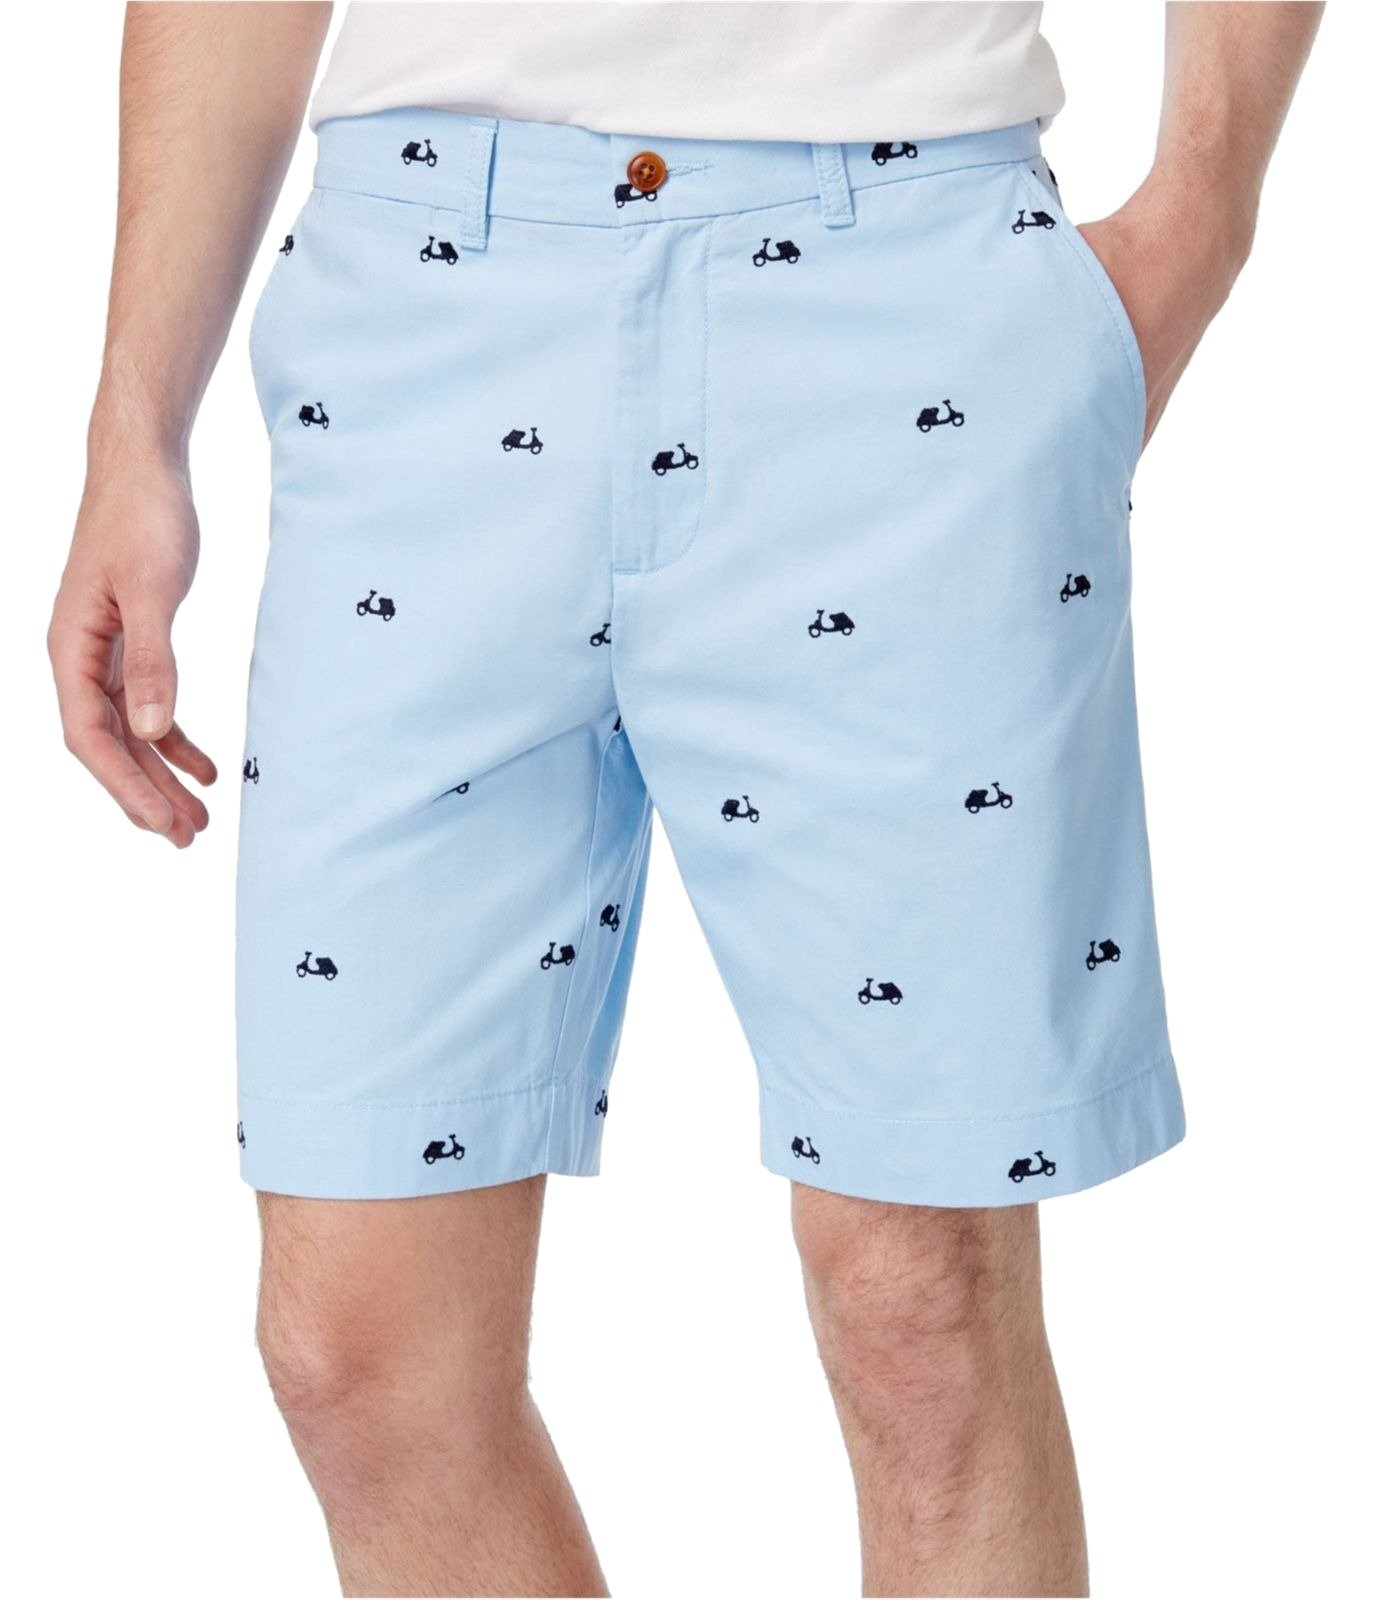 Tommy Hilfiger Mens Embroidered Flat Front Casual Shorts Blue 40